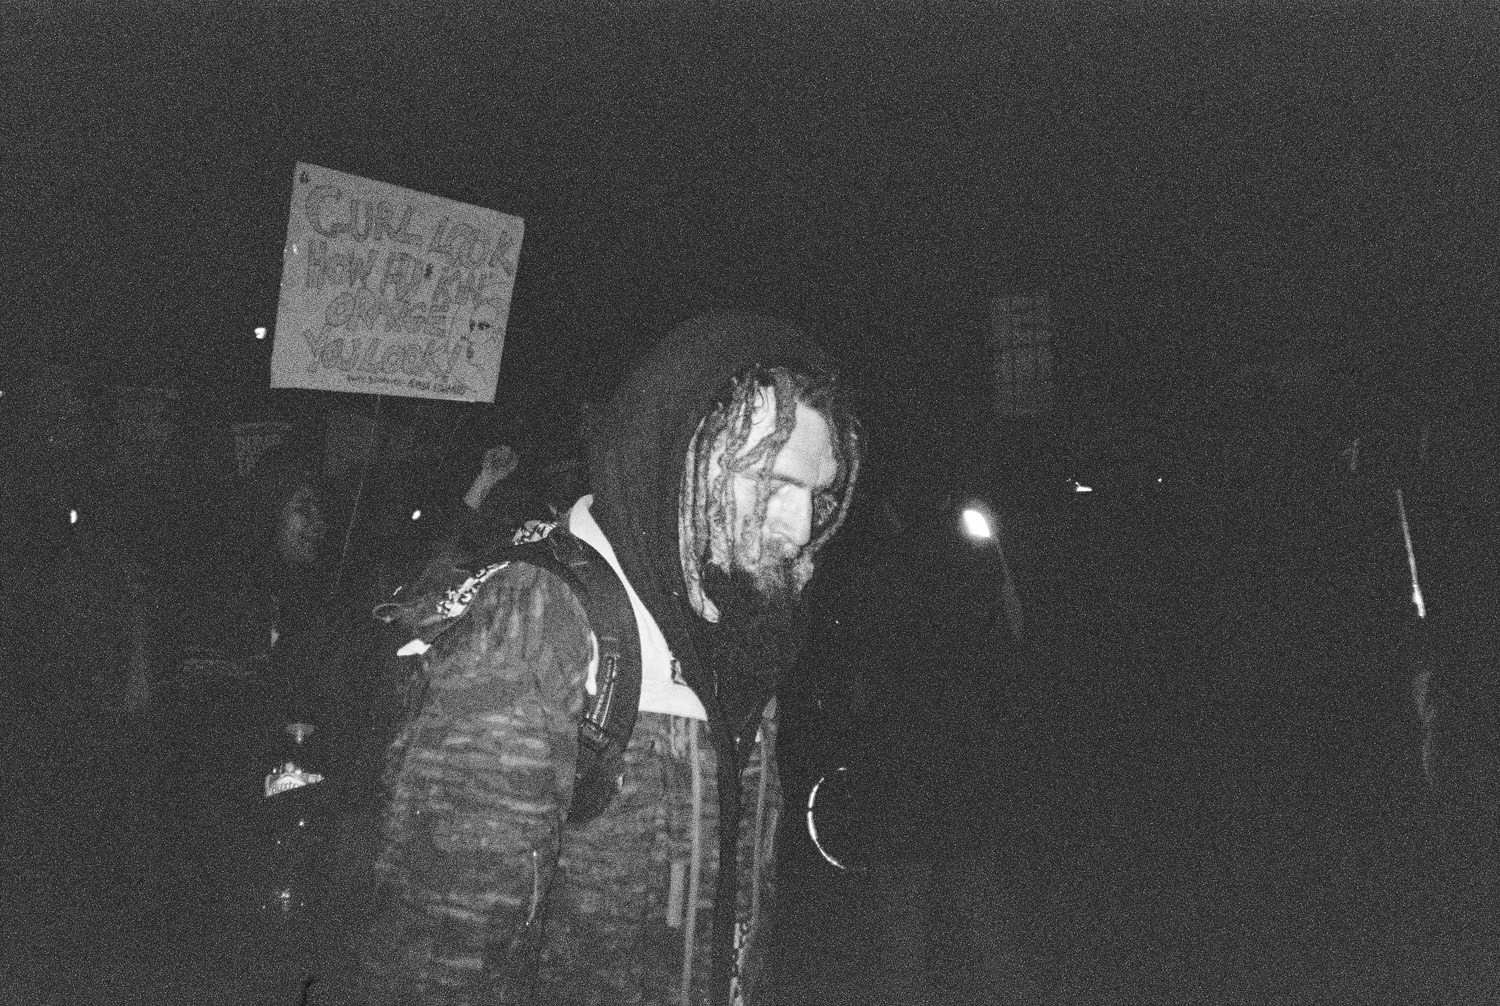 white man with dreadlocks at London protest